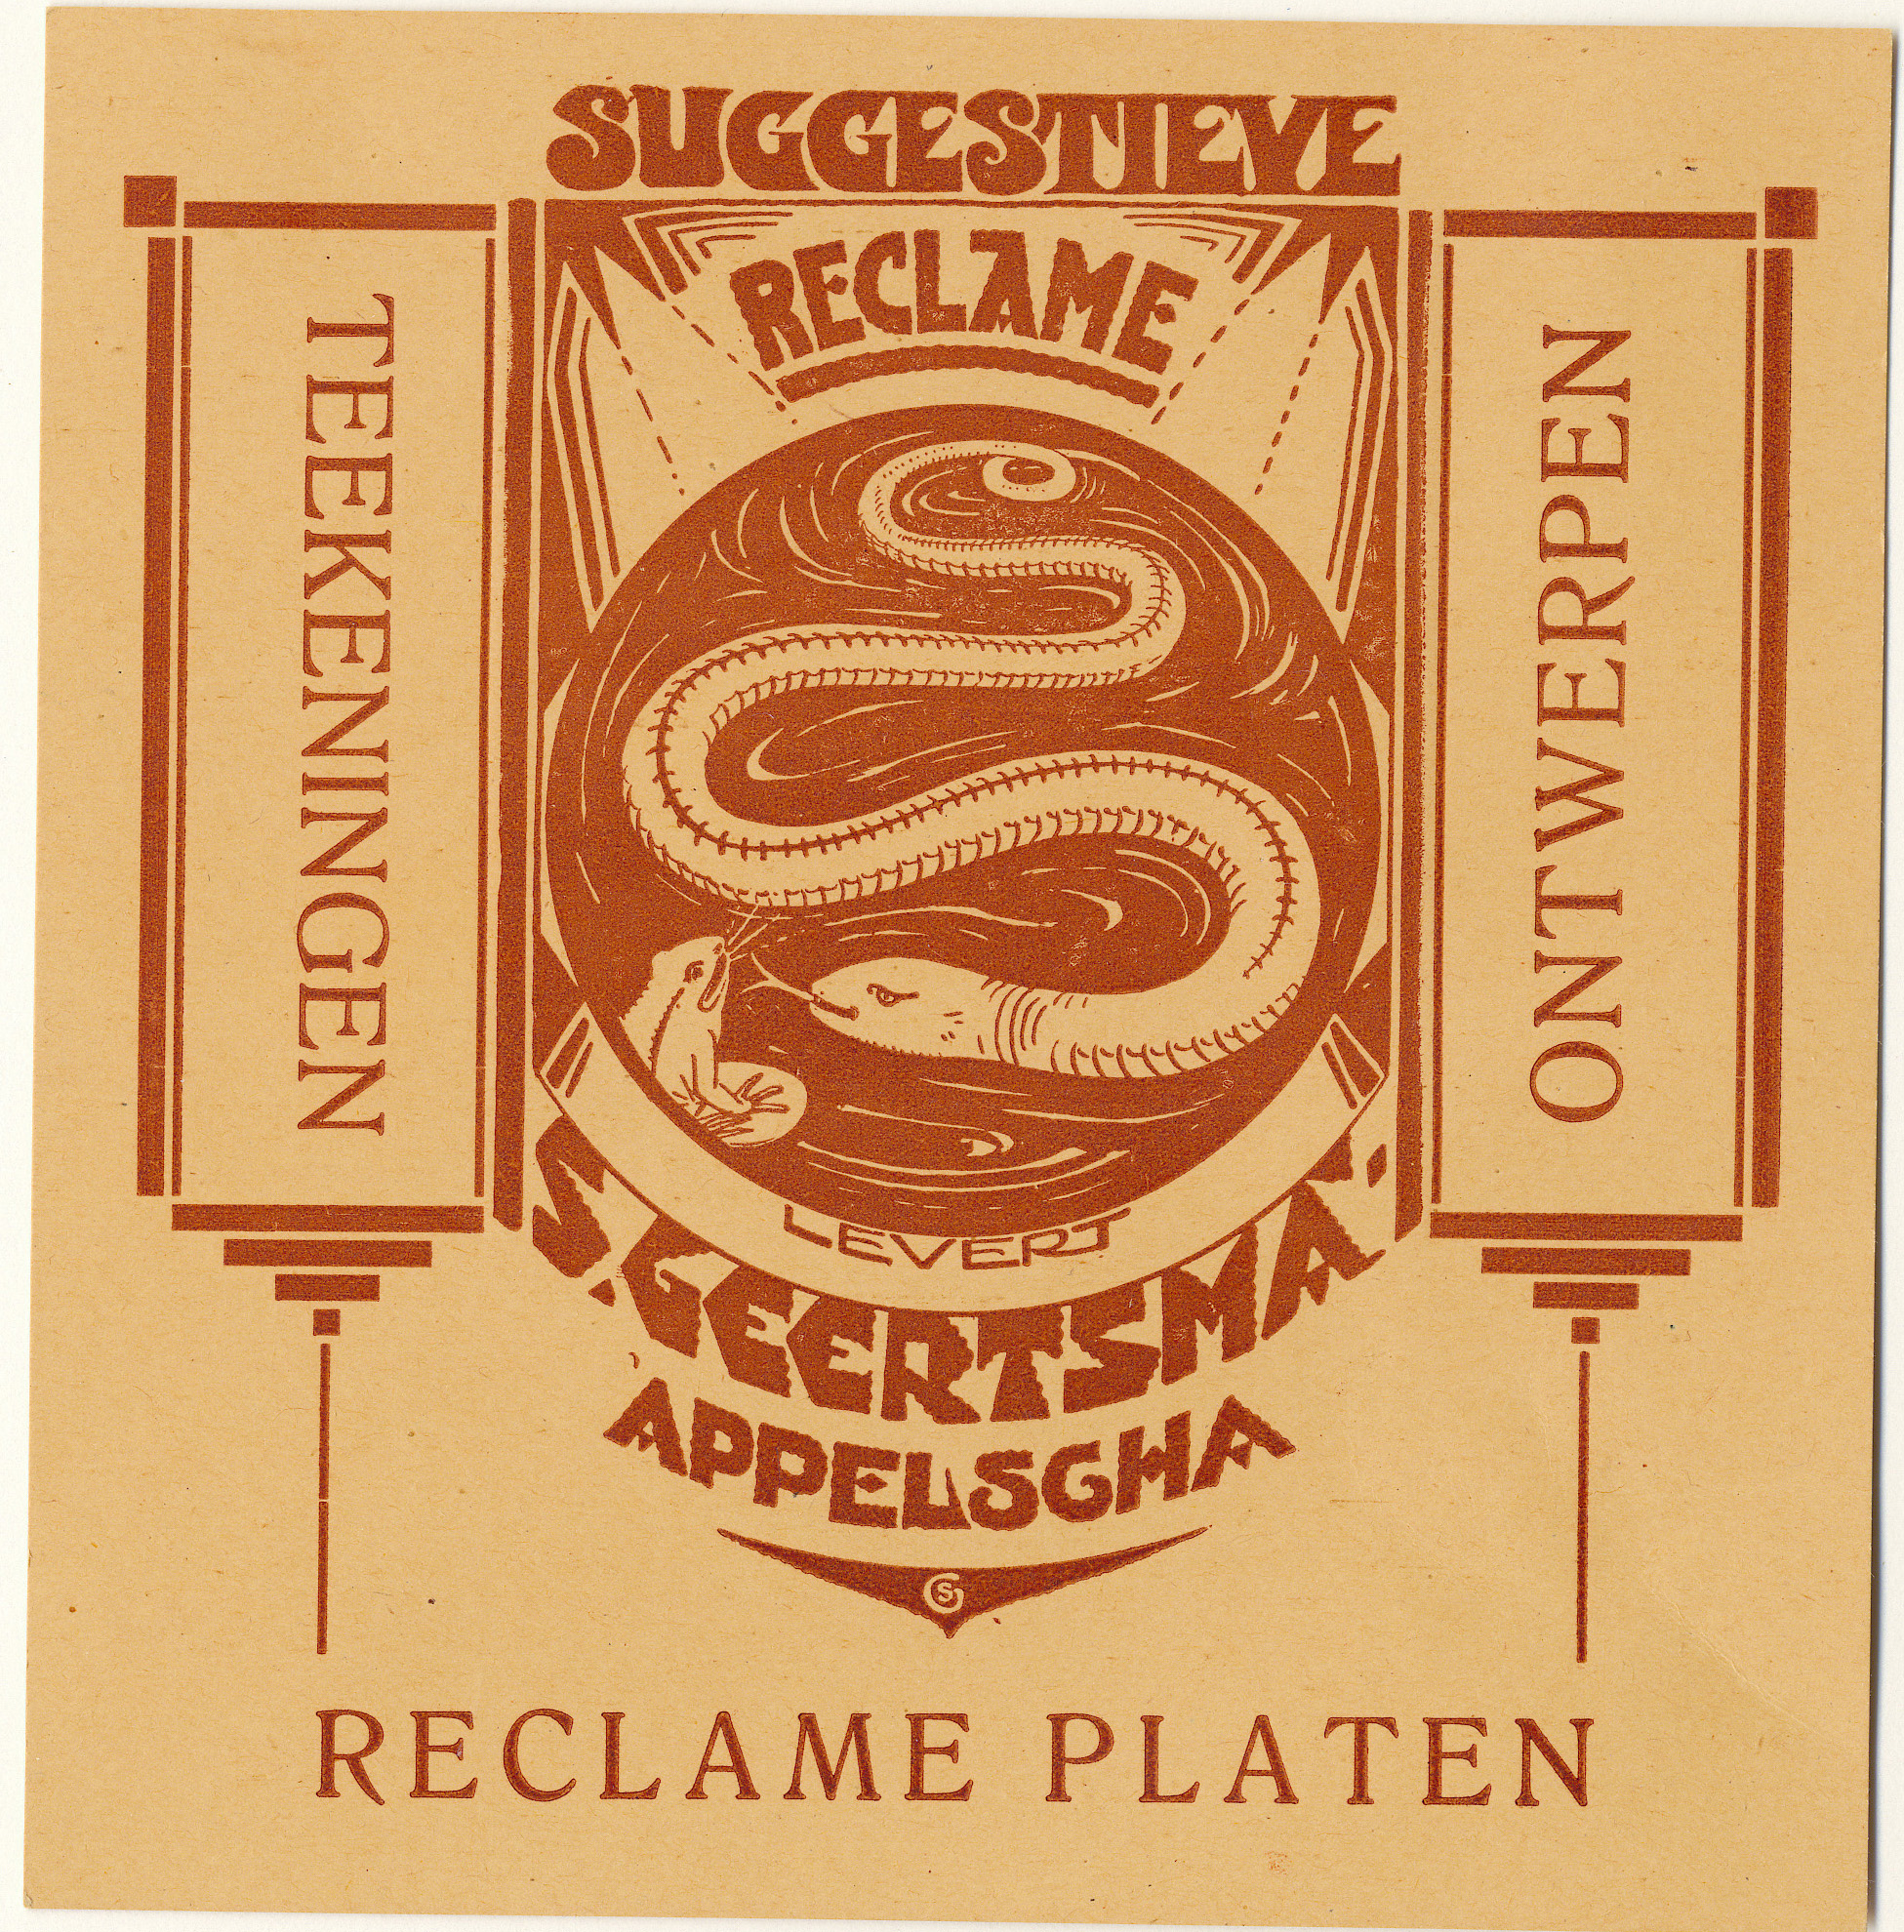 Folder Suggestieve Reclame, 1923-1940